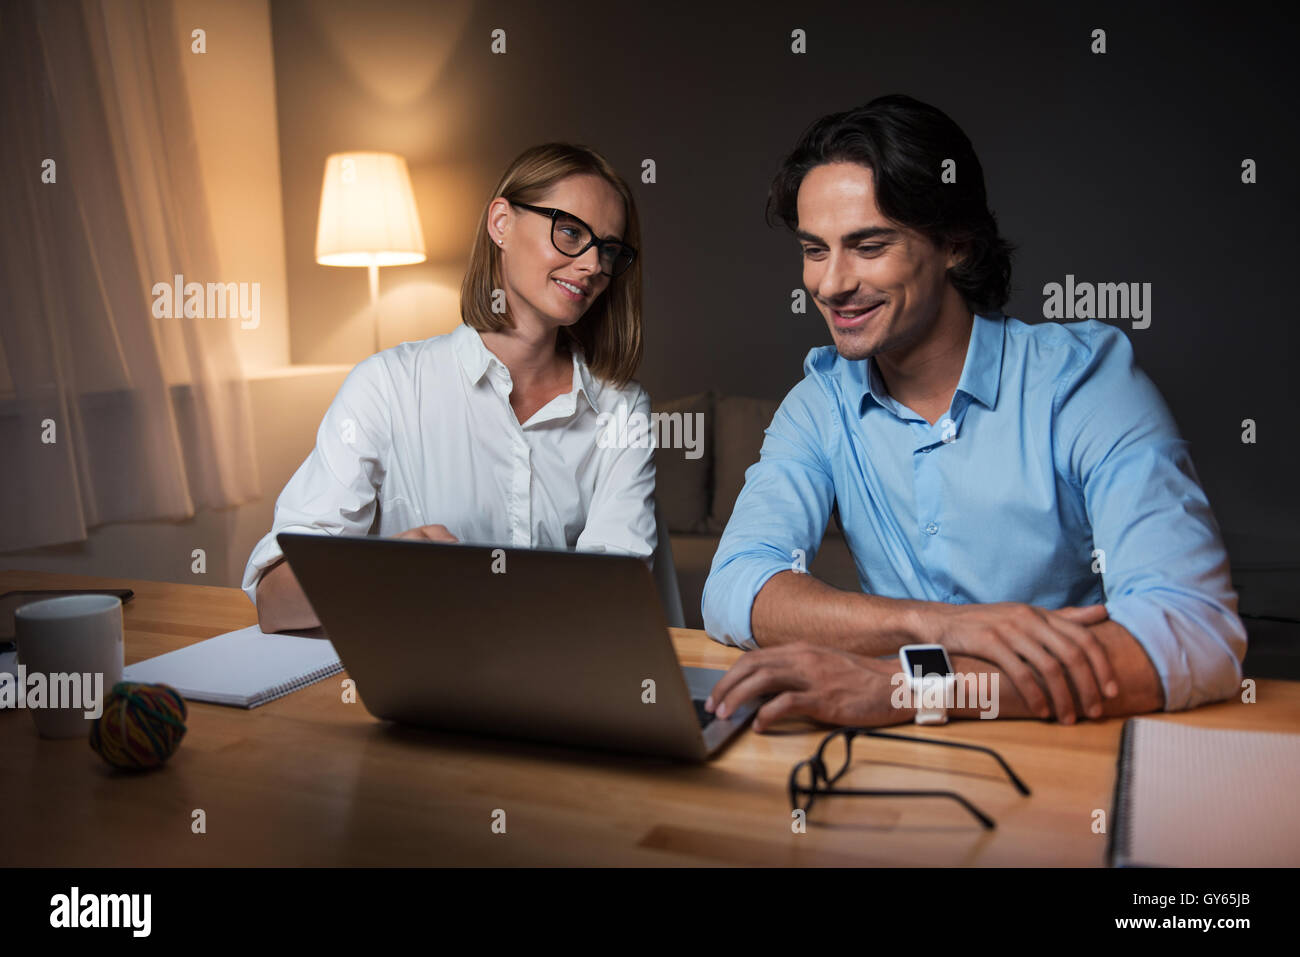 Colleagues working in an office - Stock Image